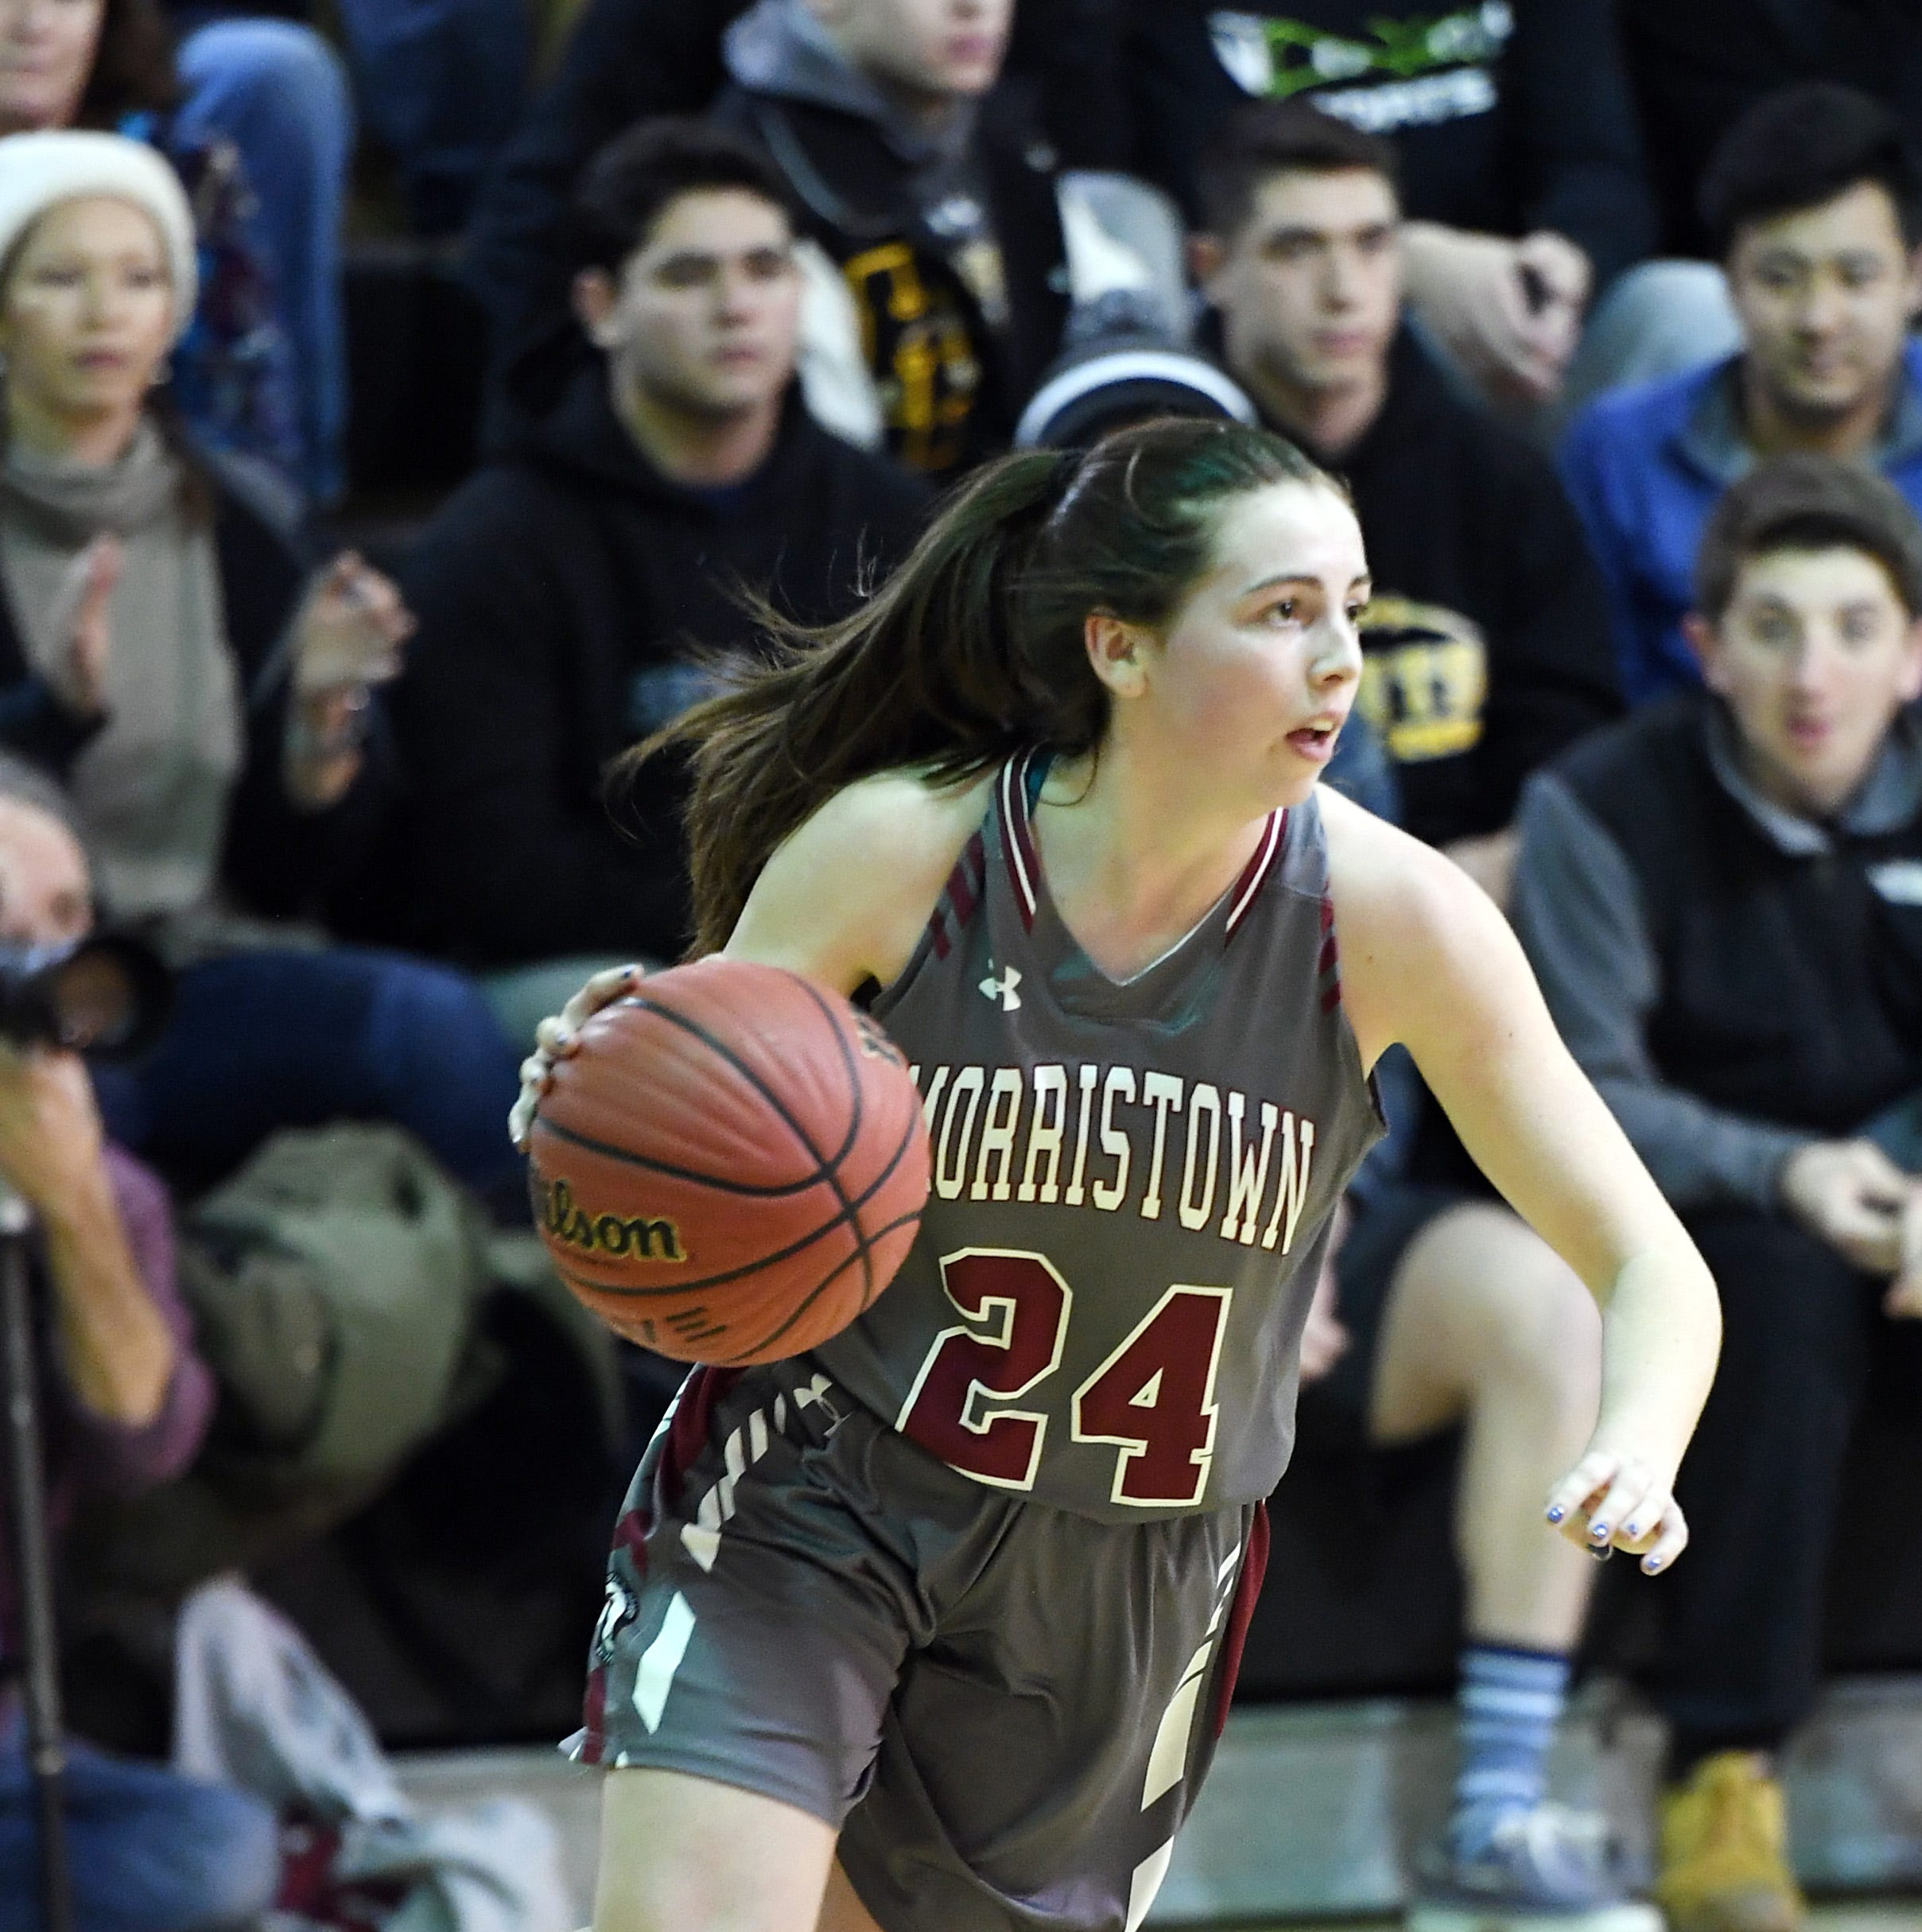 'Two equal teams' to face off for Morris County Tournament girls basketball title